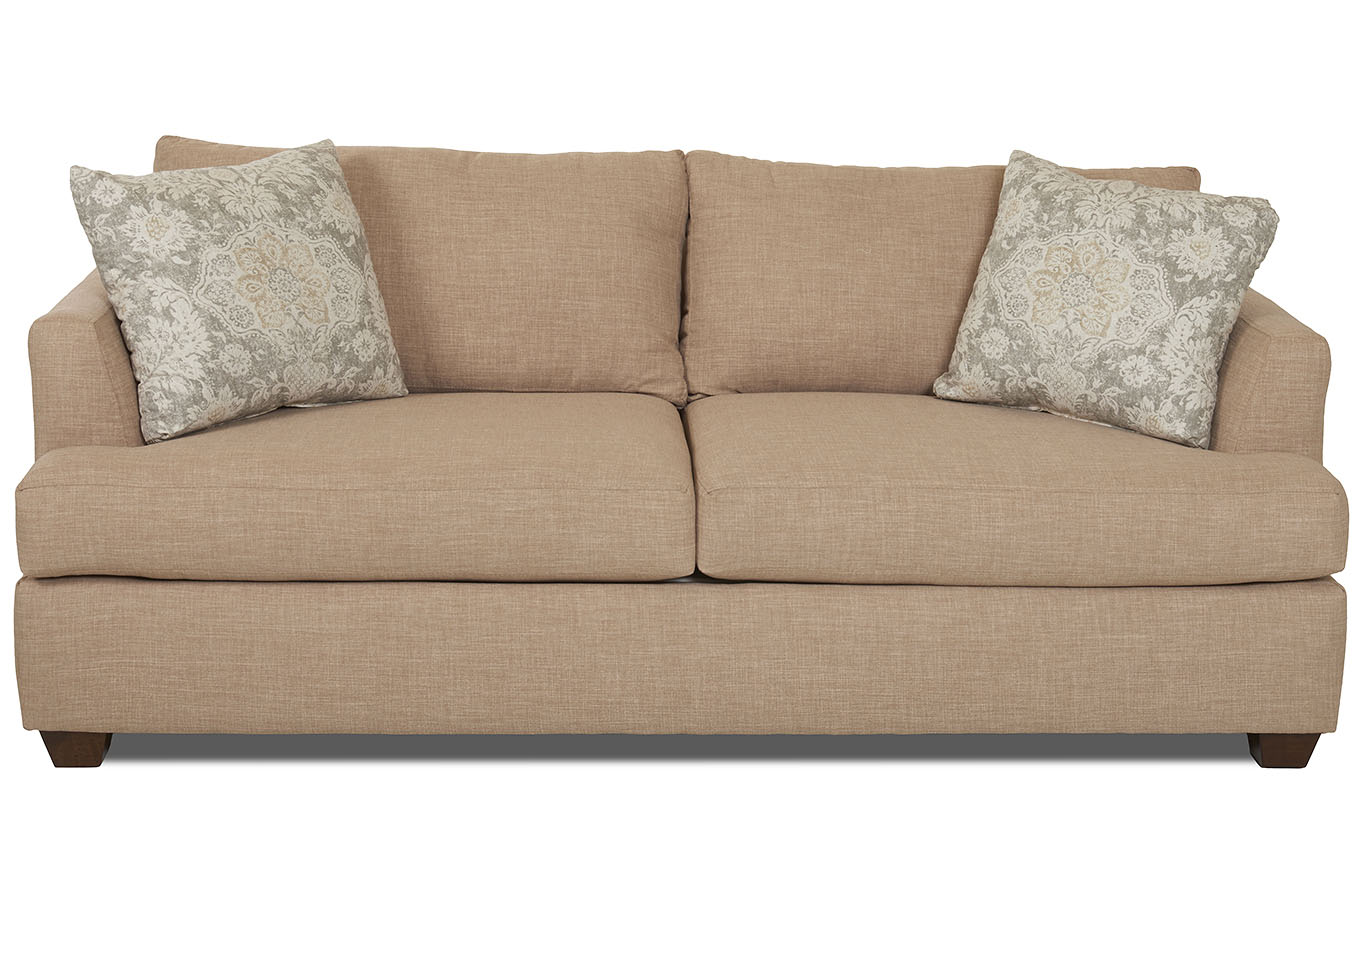 furniture at lowes com beverly brown pd telus sectional sahari shop hills